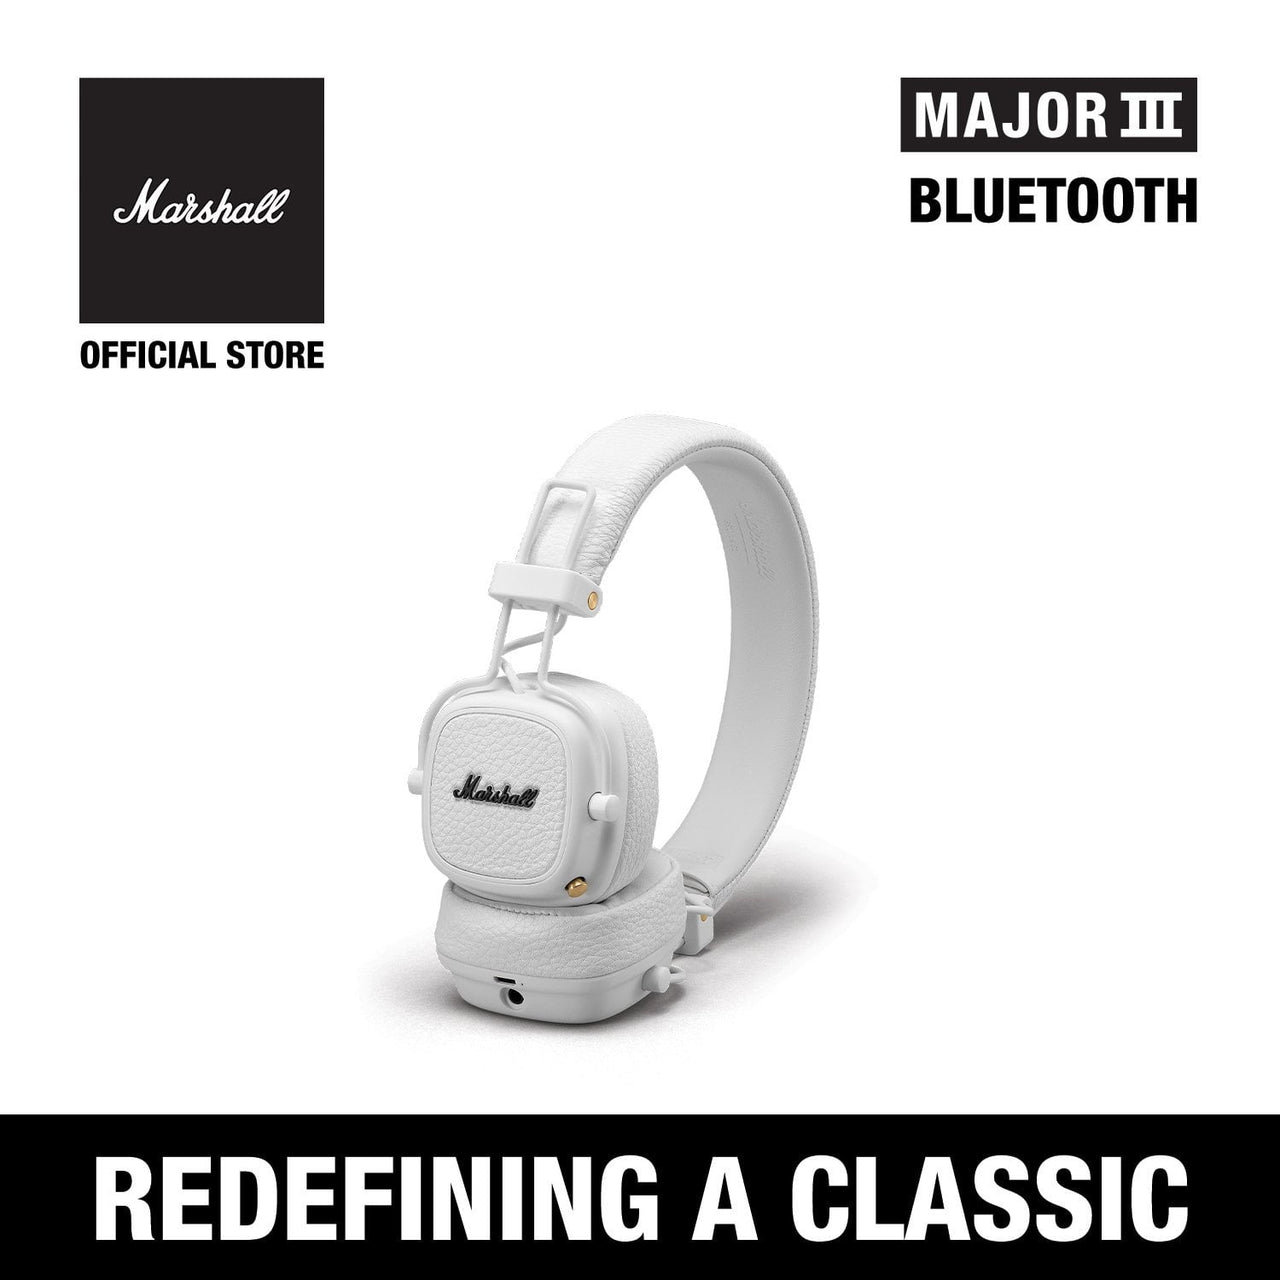 Major III Bluetooth White [EVENT EXCLUSIVE], Headphones, Marshall Headphones, ASH Asia